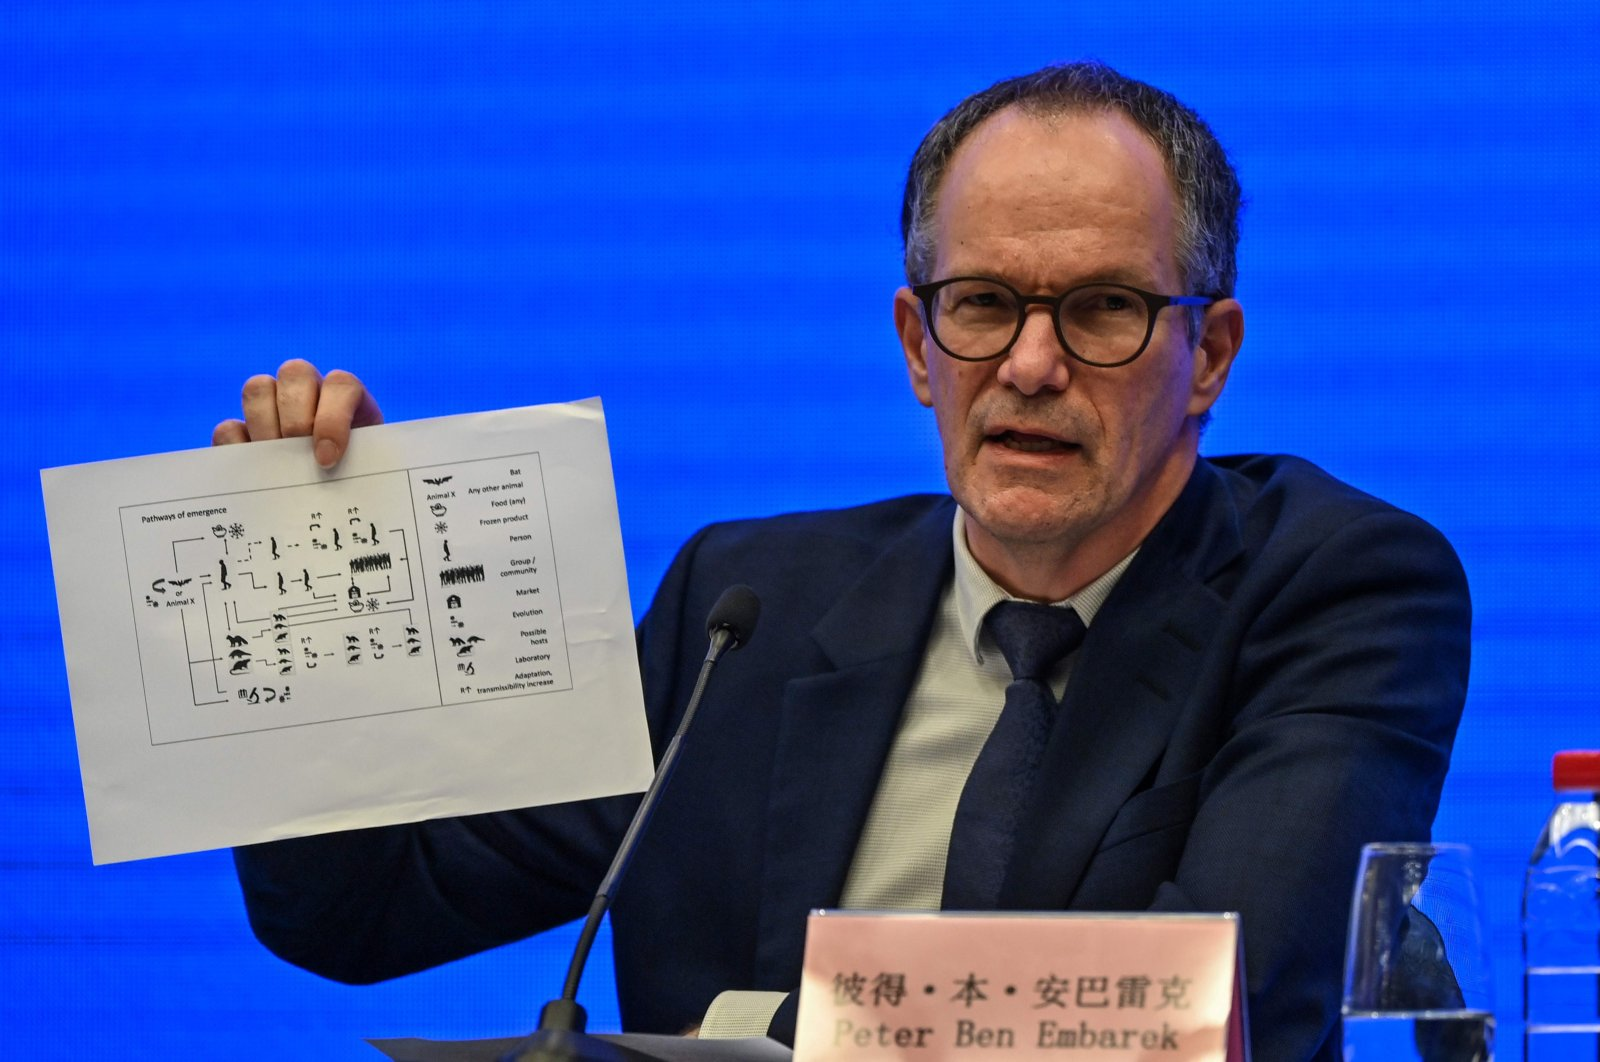 Peter Ben Embarek speaks during a press conference to wrap up a visit by an international team of experts from the World Health Organization (WHO) in the city of Wuhan, in China's Hubei province on Feb. 9, 2021. (AFP)